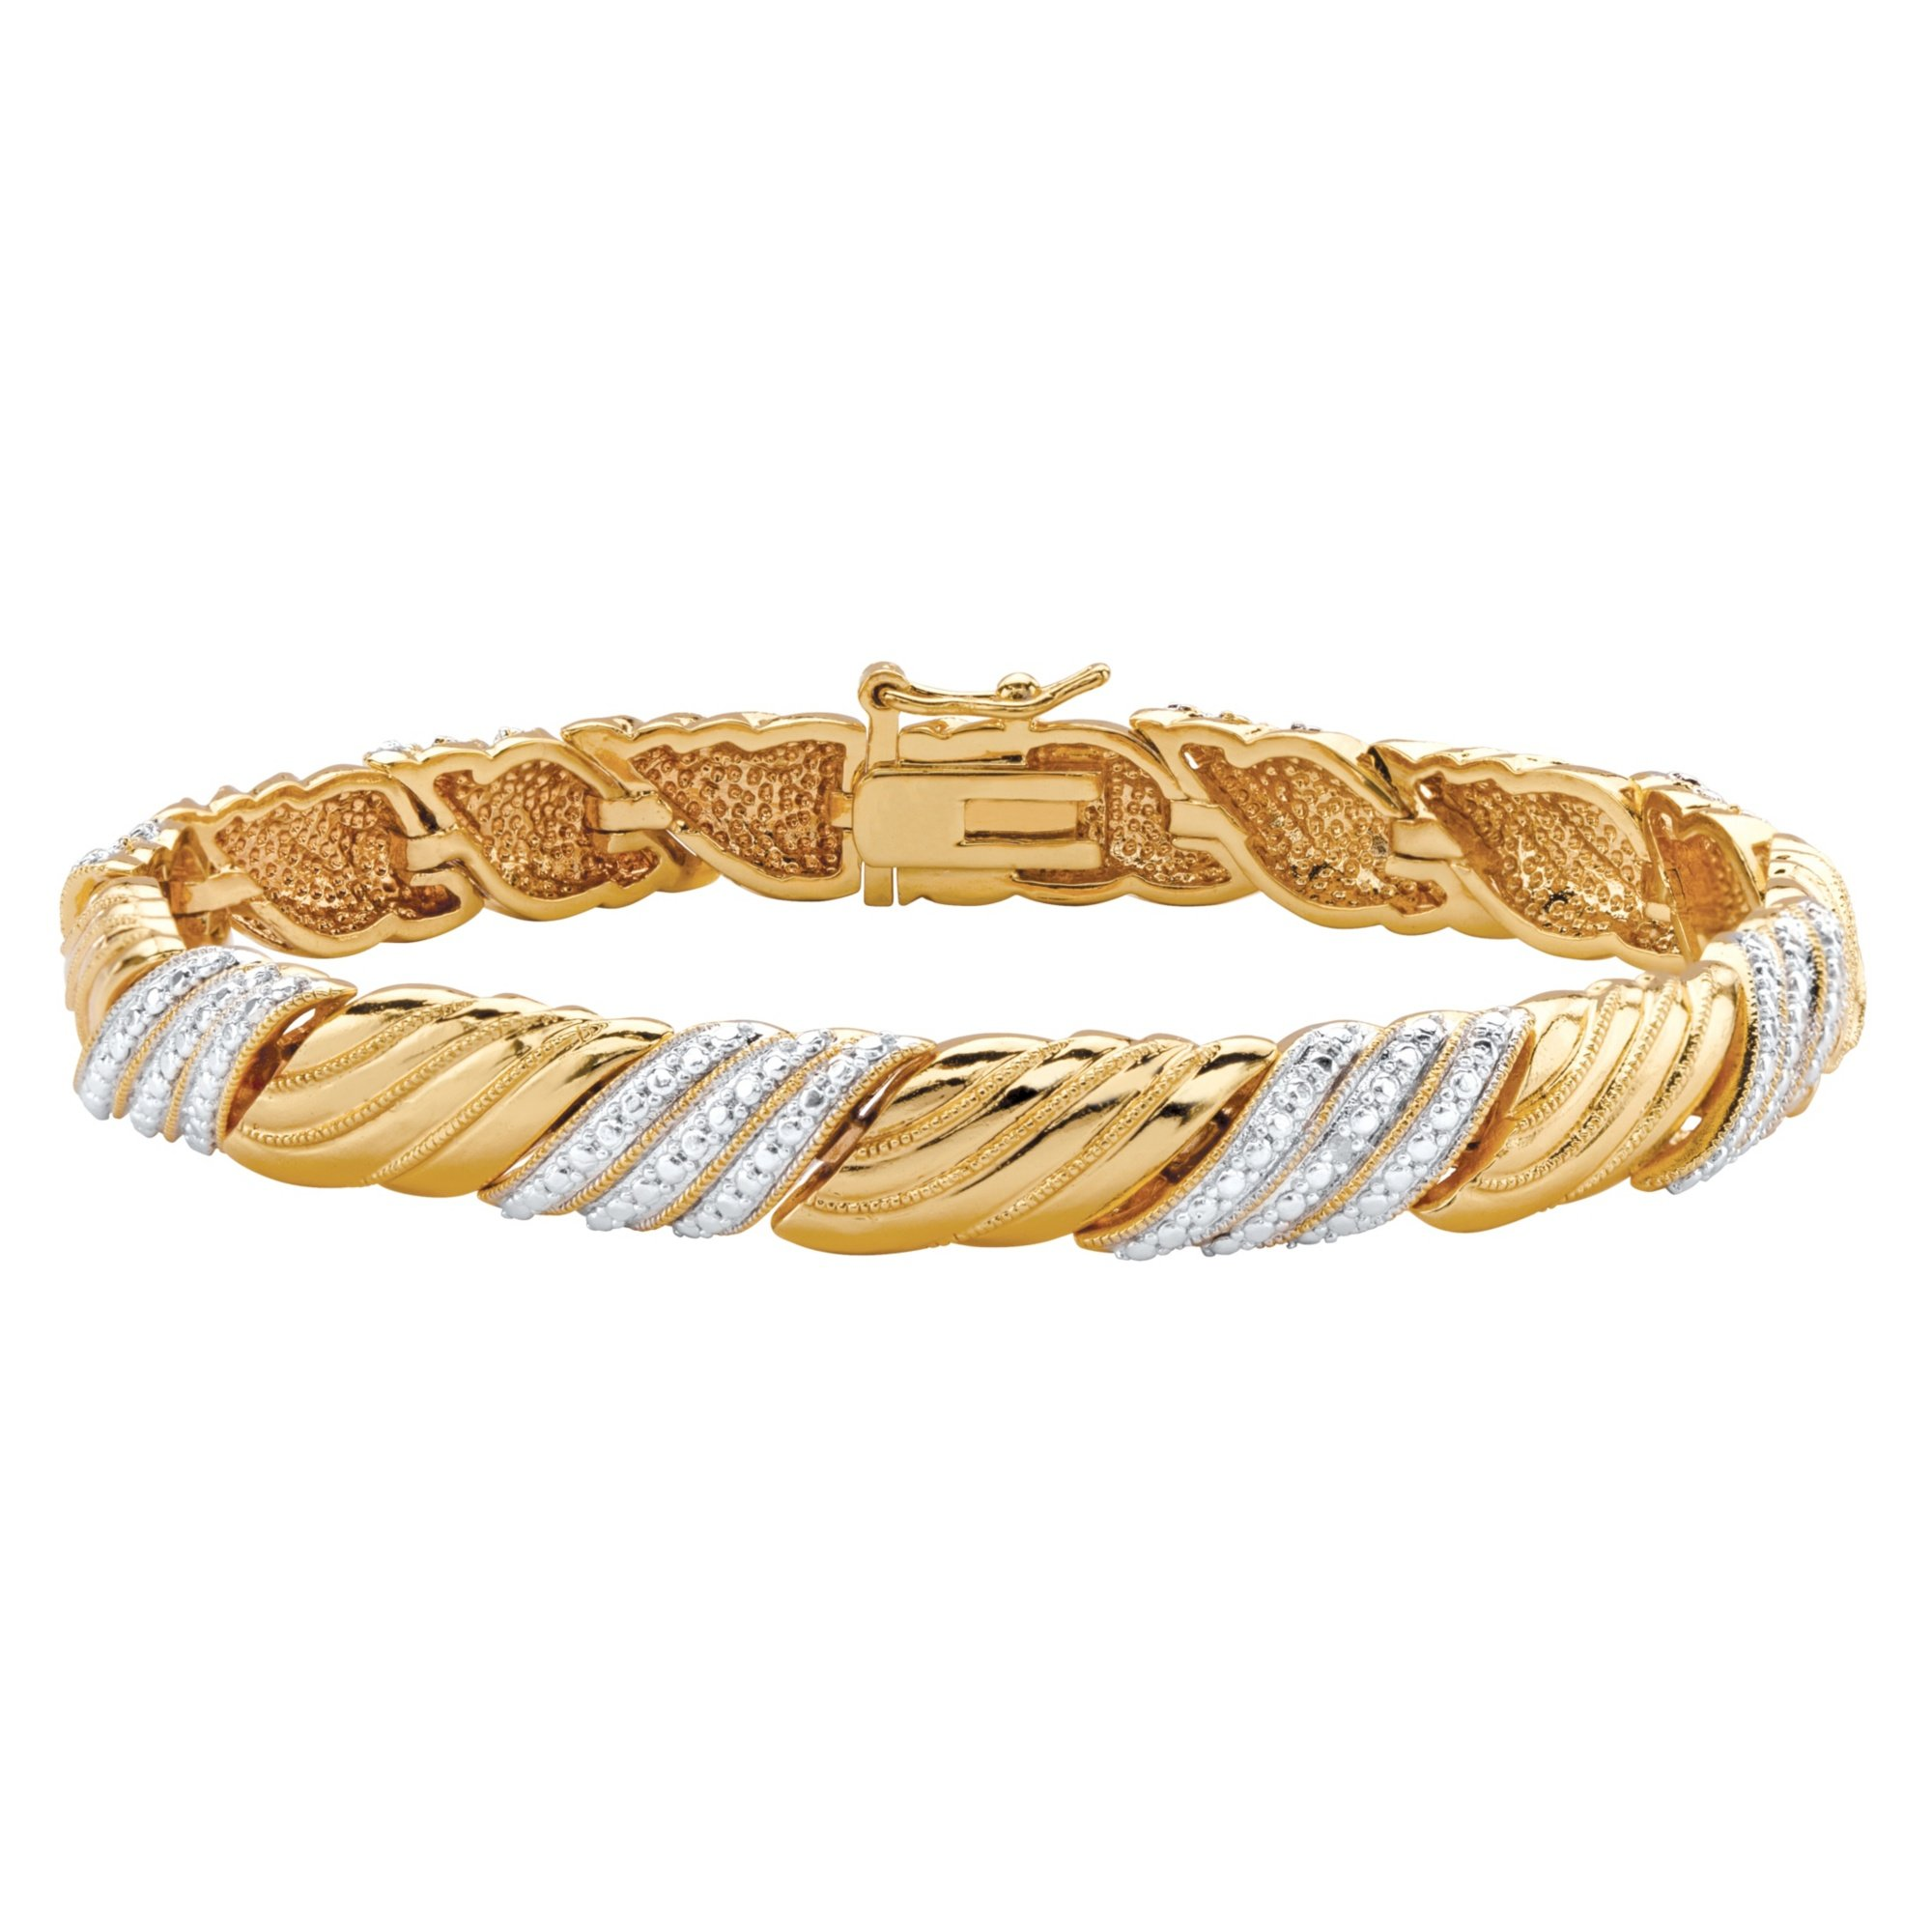 Palm Beach Jewelry White Diamond Accent Pave-Style 18k Gold-Plated Textured Two-Tone Bracelet 7.5''